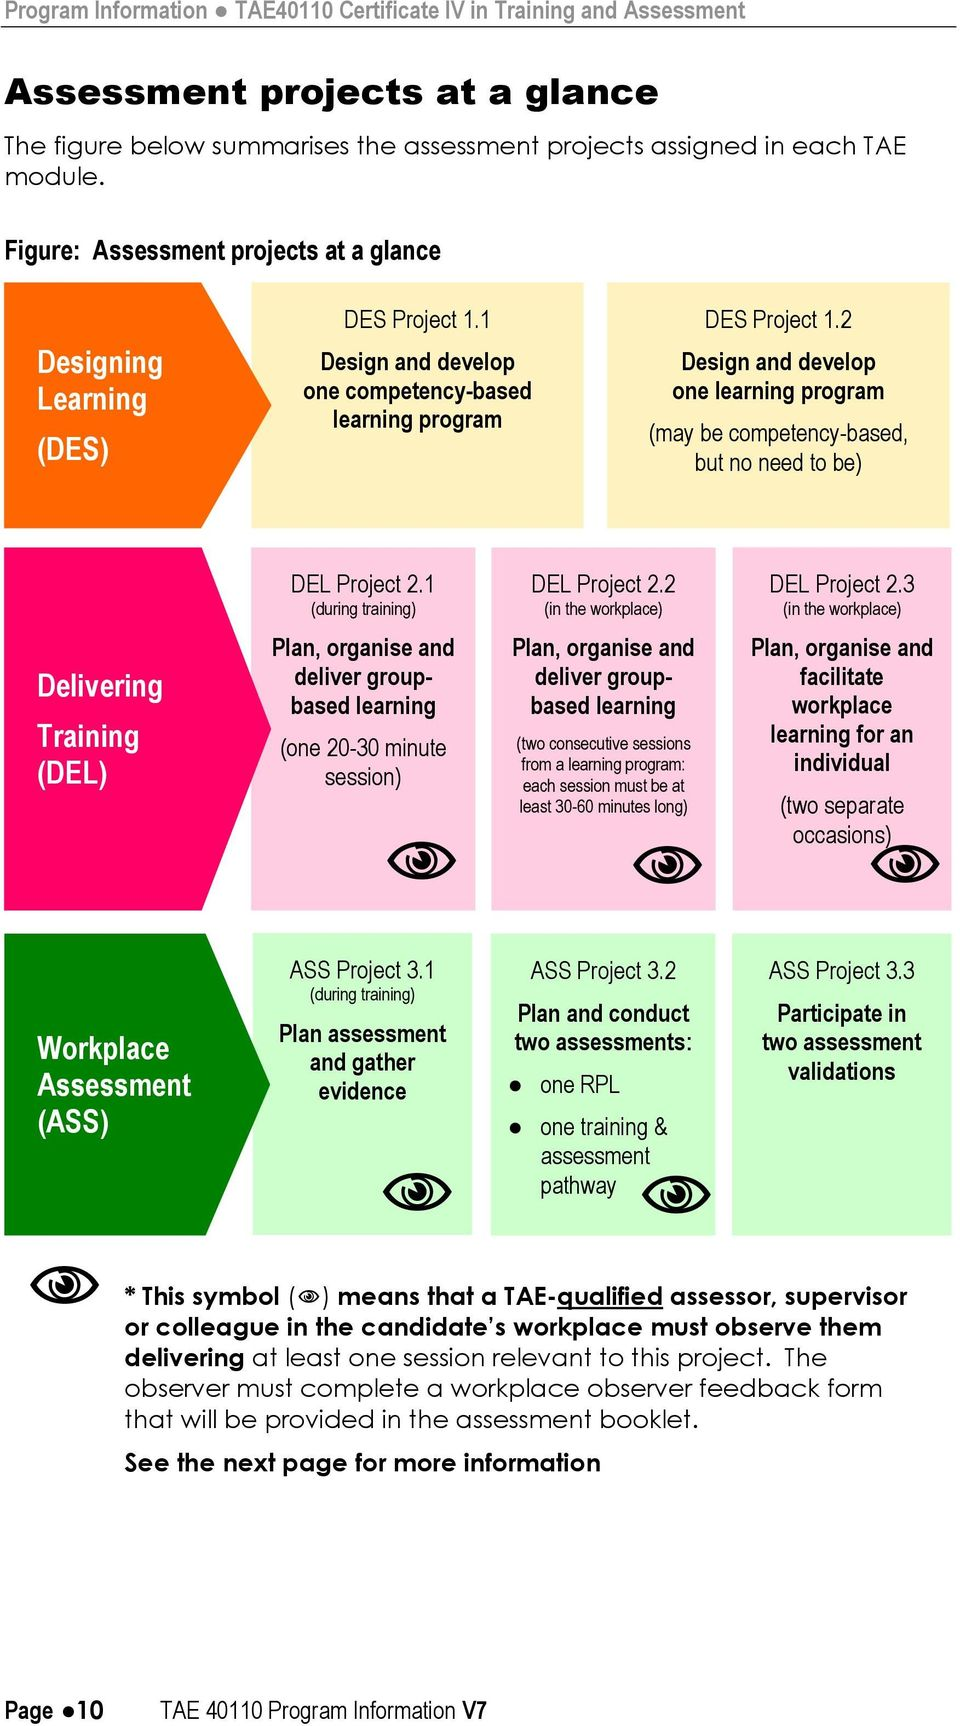 2 Design and develop one learning program (may be competency-based, but no need to be) DEL Project 2.1 (during training) DEL Project 2.2 (in the workplace) DEL Project 2.